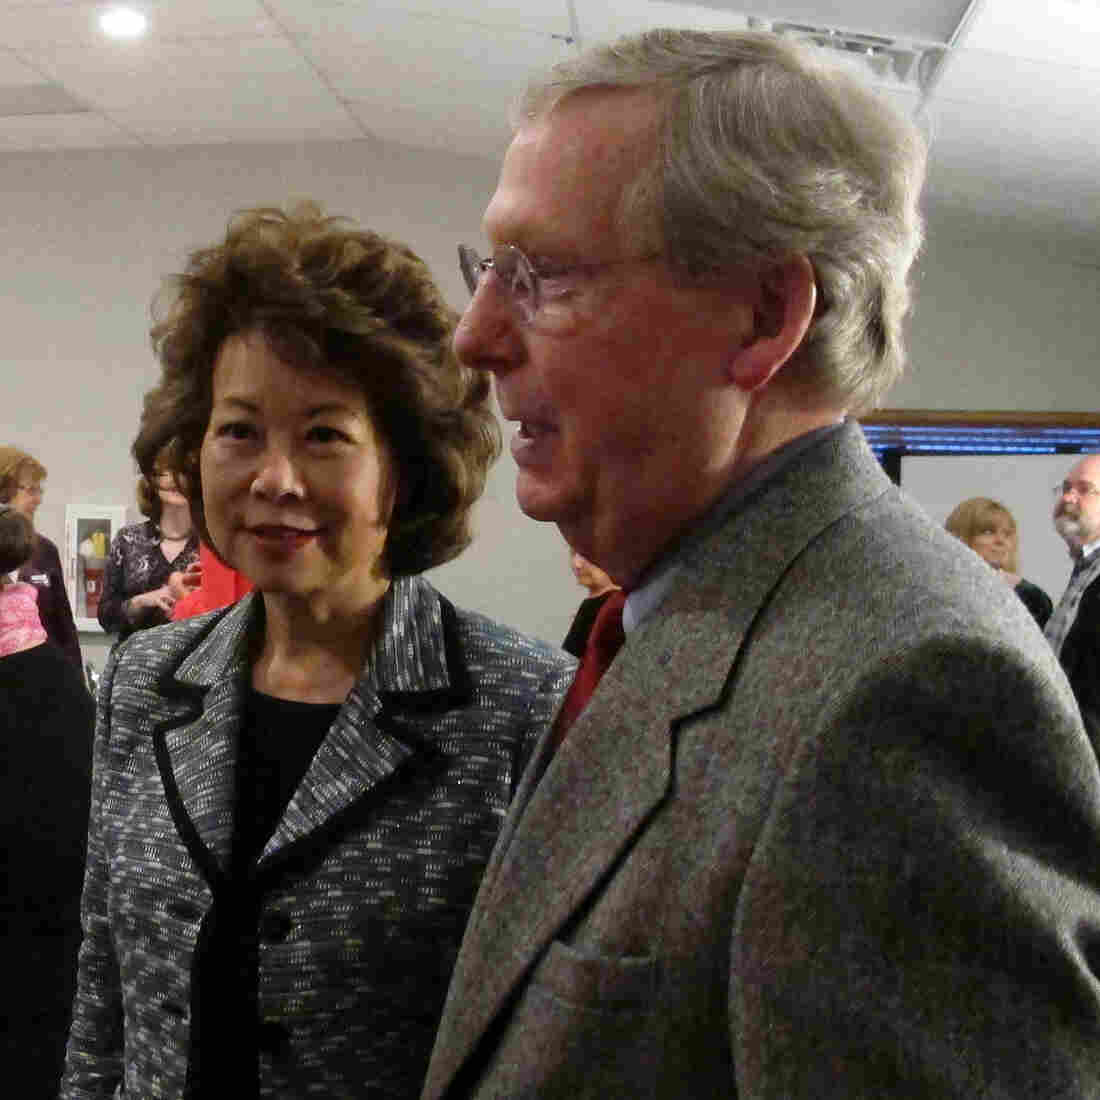 Sen. Mitch McConnell and his wife, former Labor Secretary Elaine Chao, at a Republican dinner in Winchester, Ky., last month.